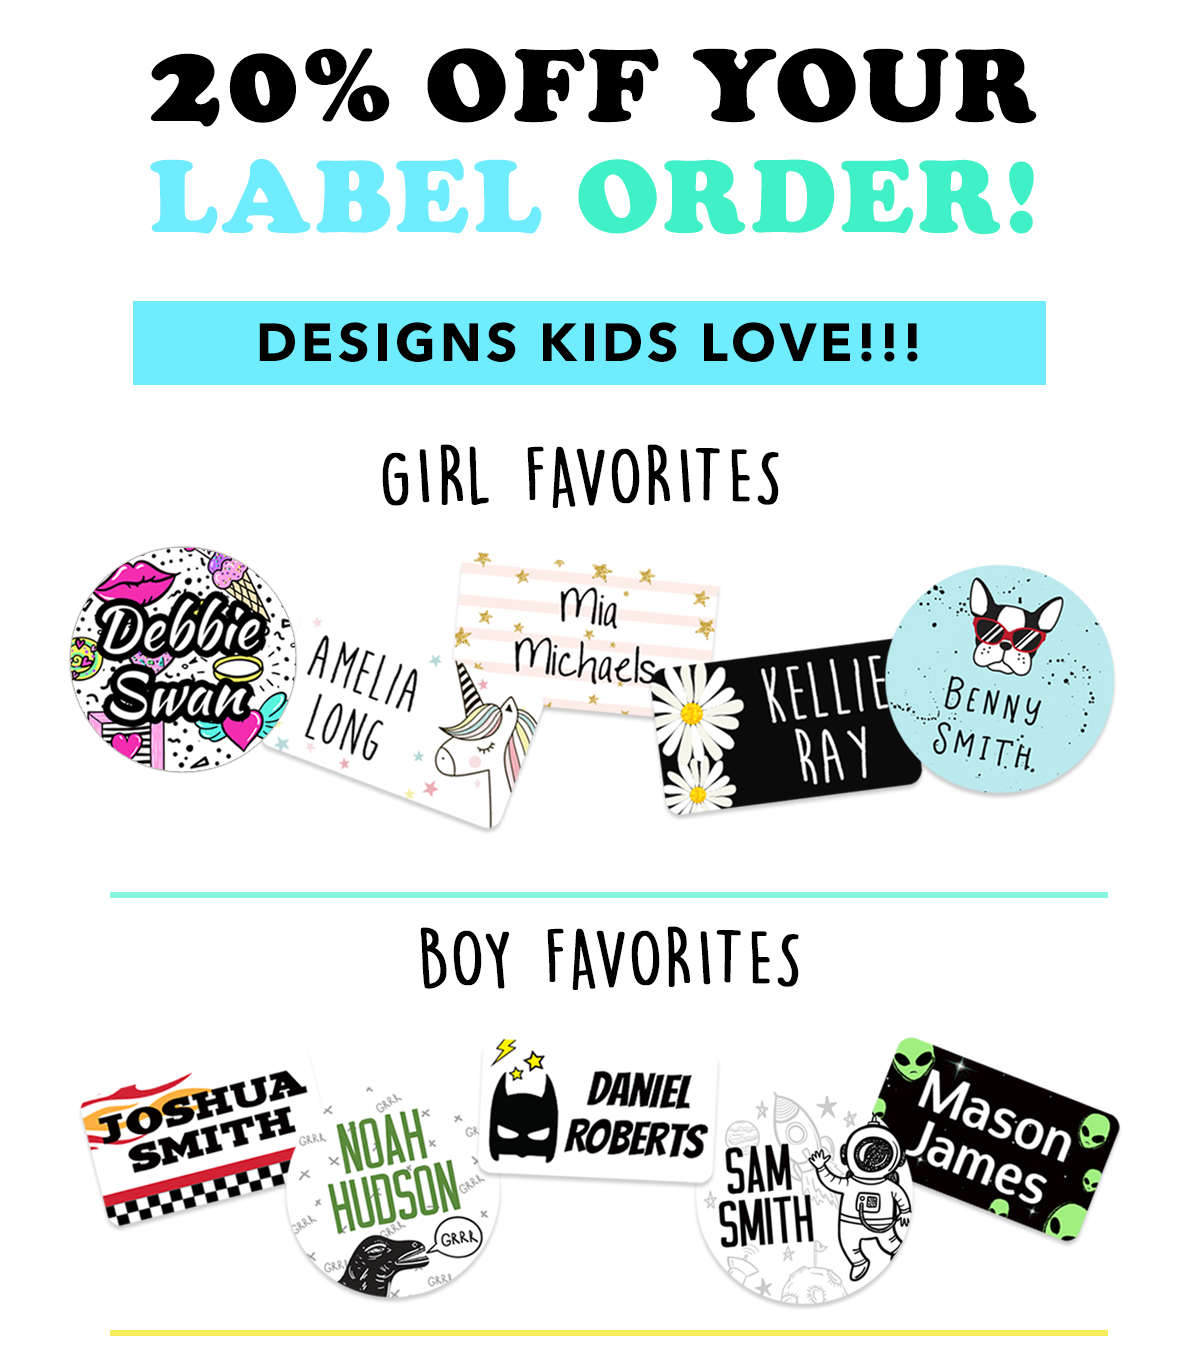 20% off your label order